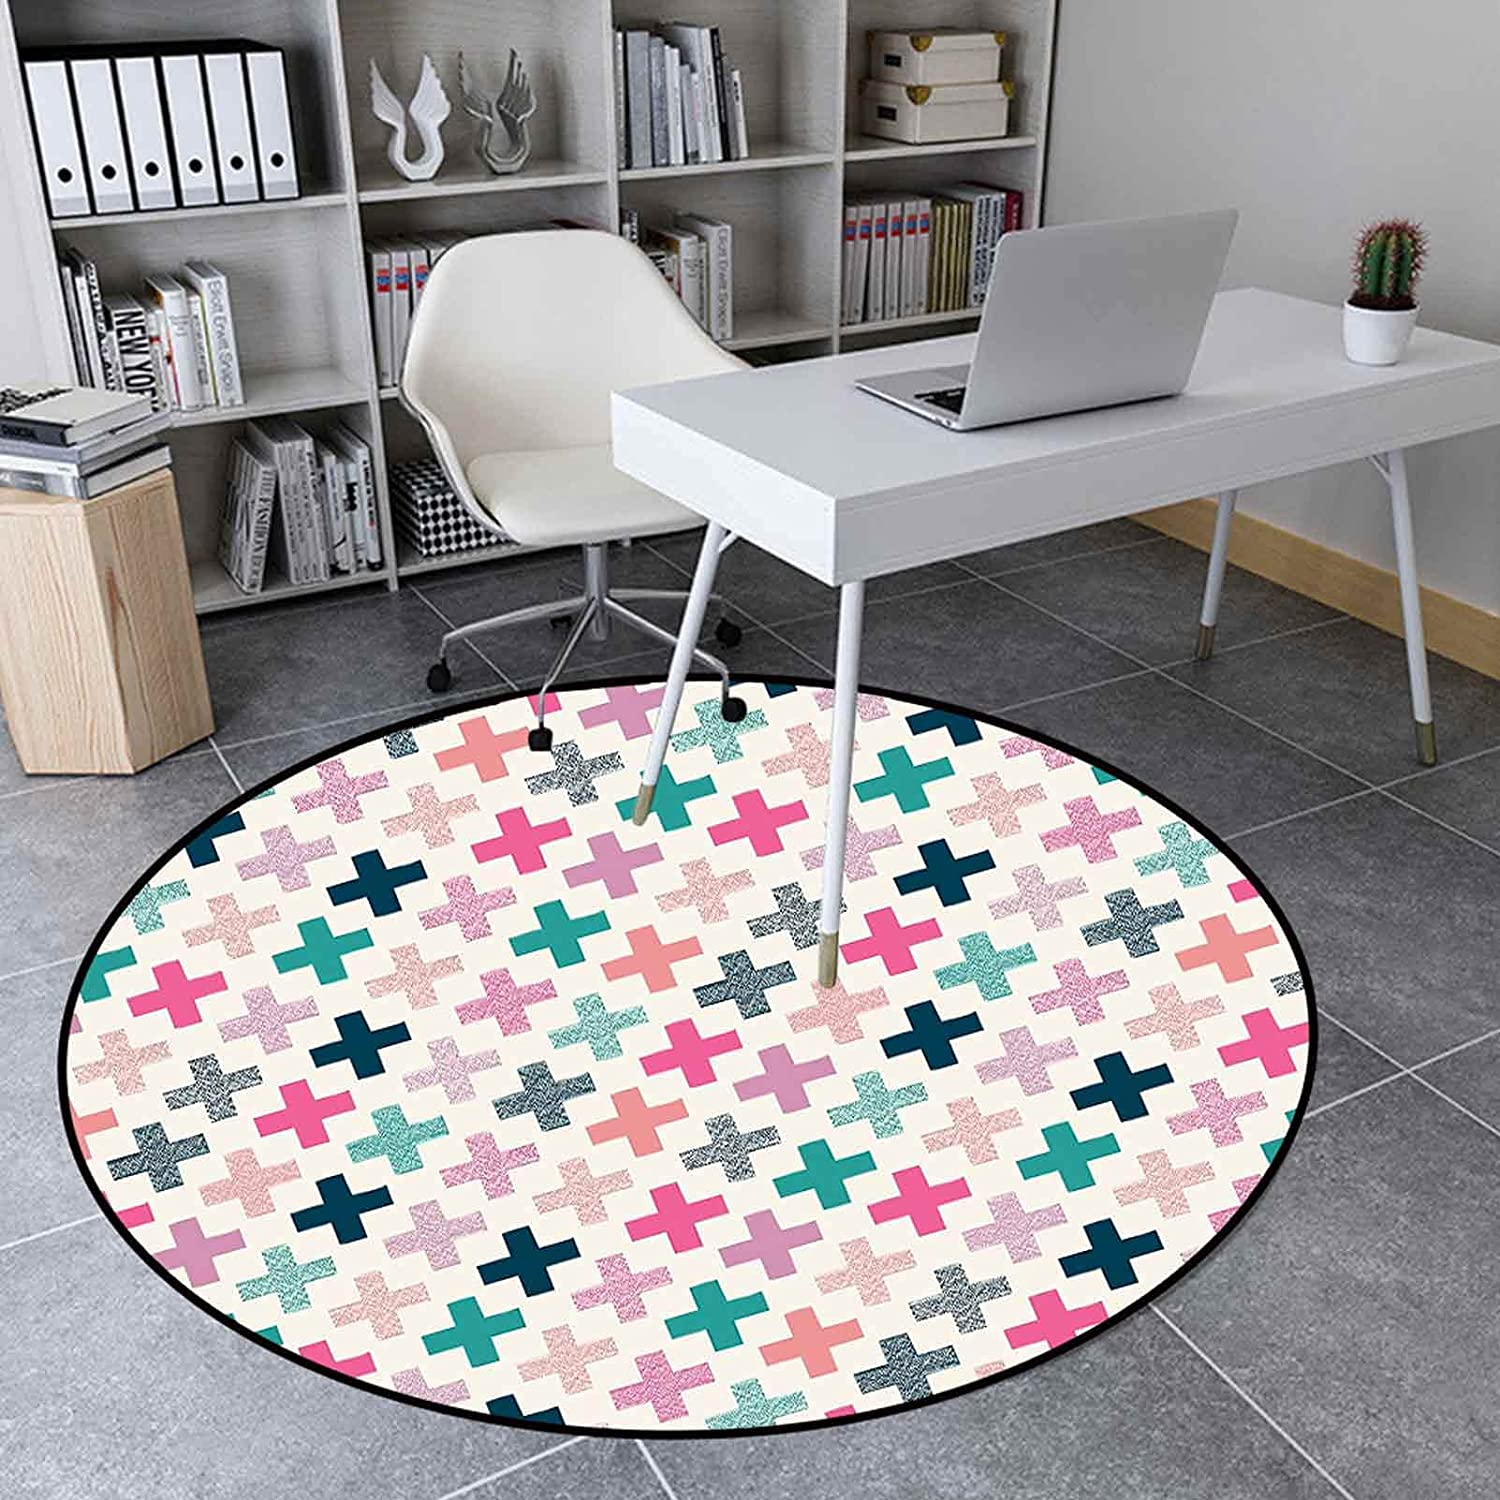 Round Area Store Rug 2.95' Indoor Floor Room Mat Col for Living Houston Mall